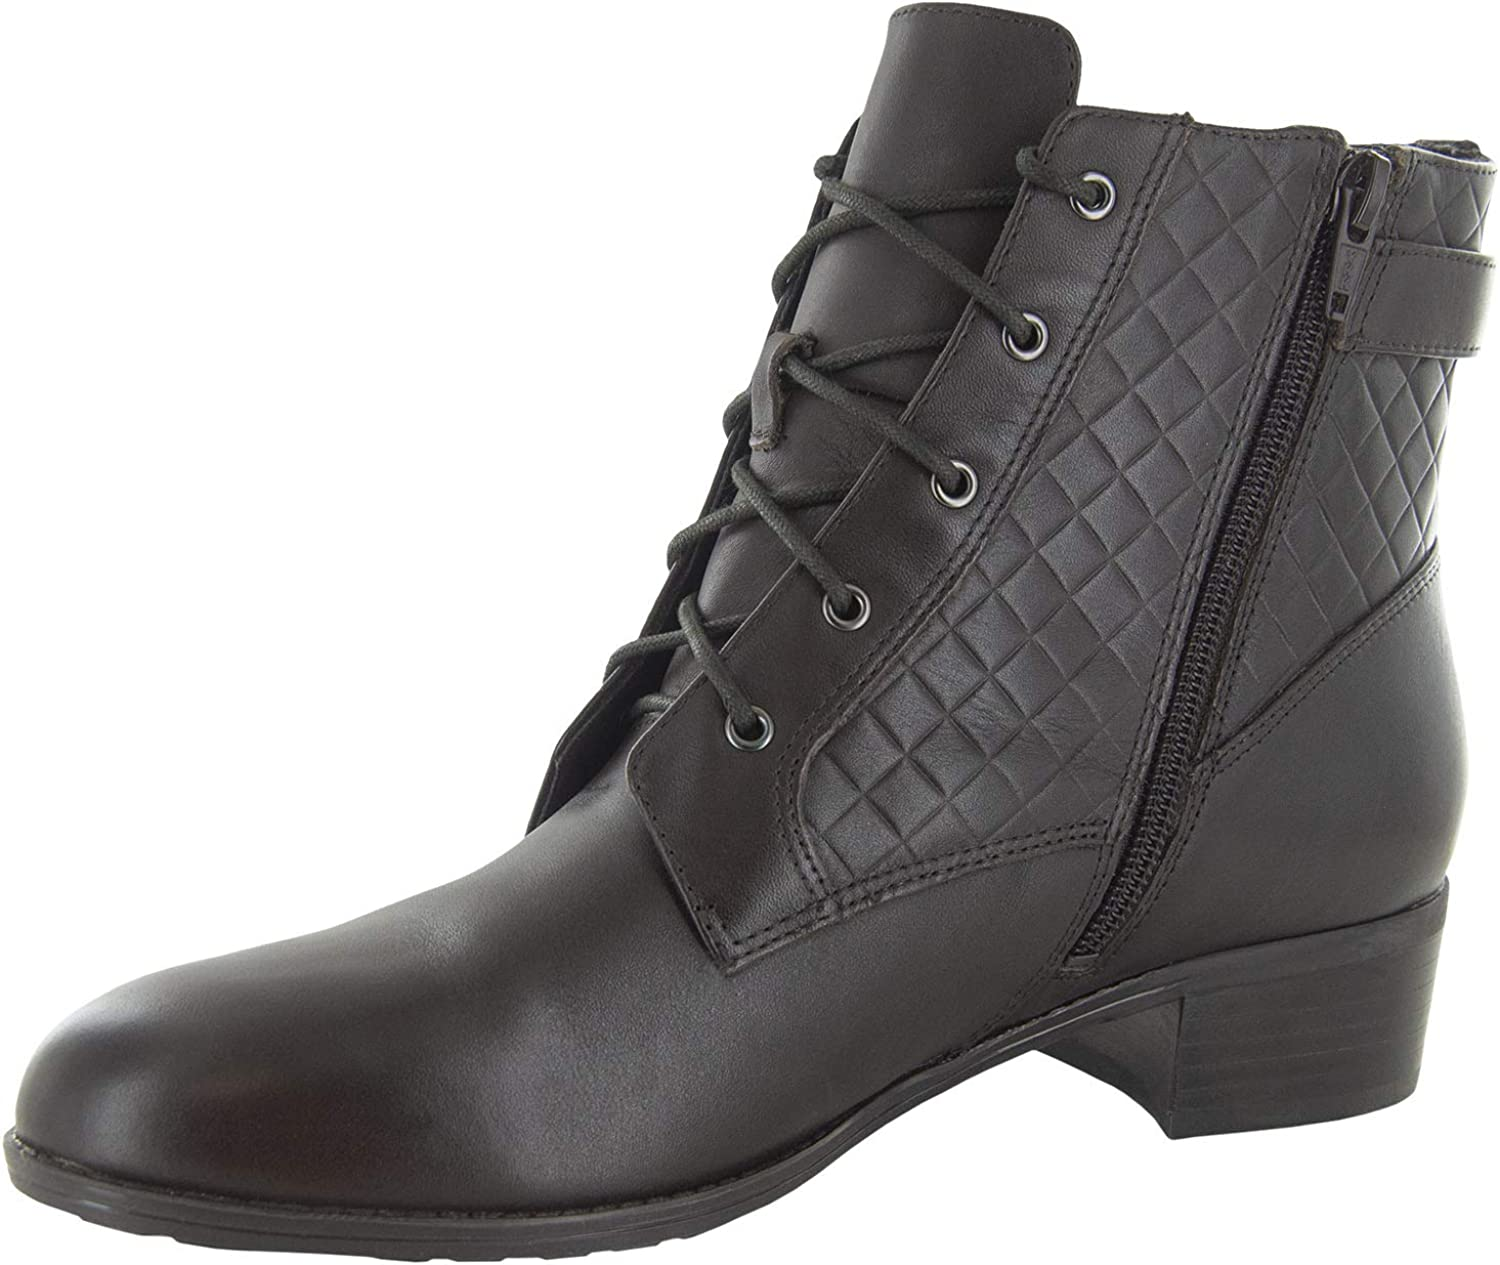 Isaac Max 65% OFF Mizrahi Overseas parallel import regular item Live Womens Ankle Leather Sam Boots